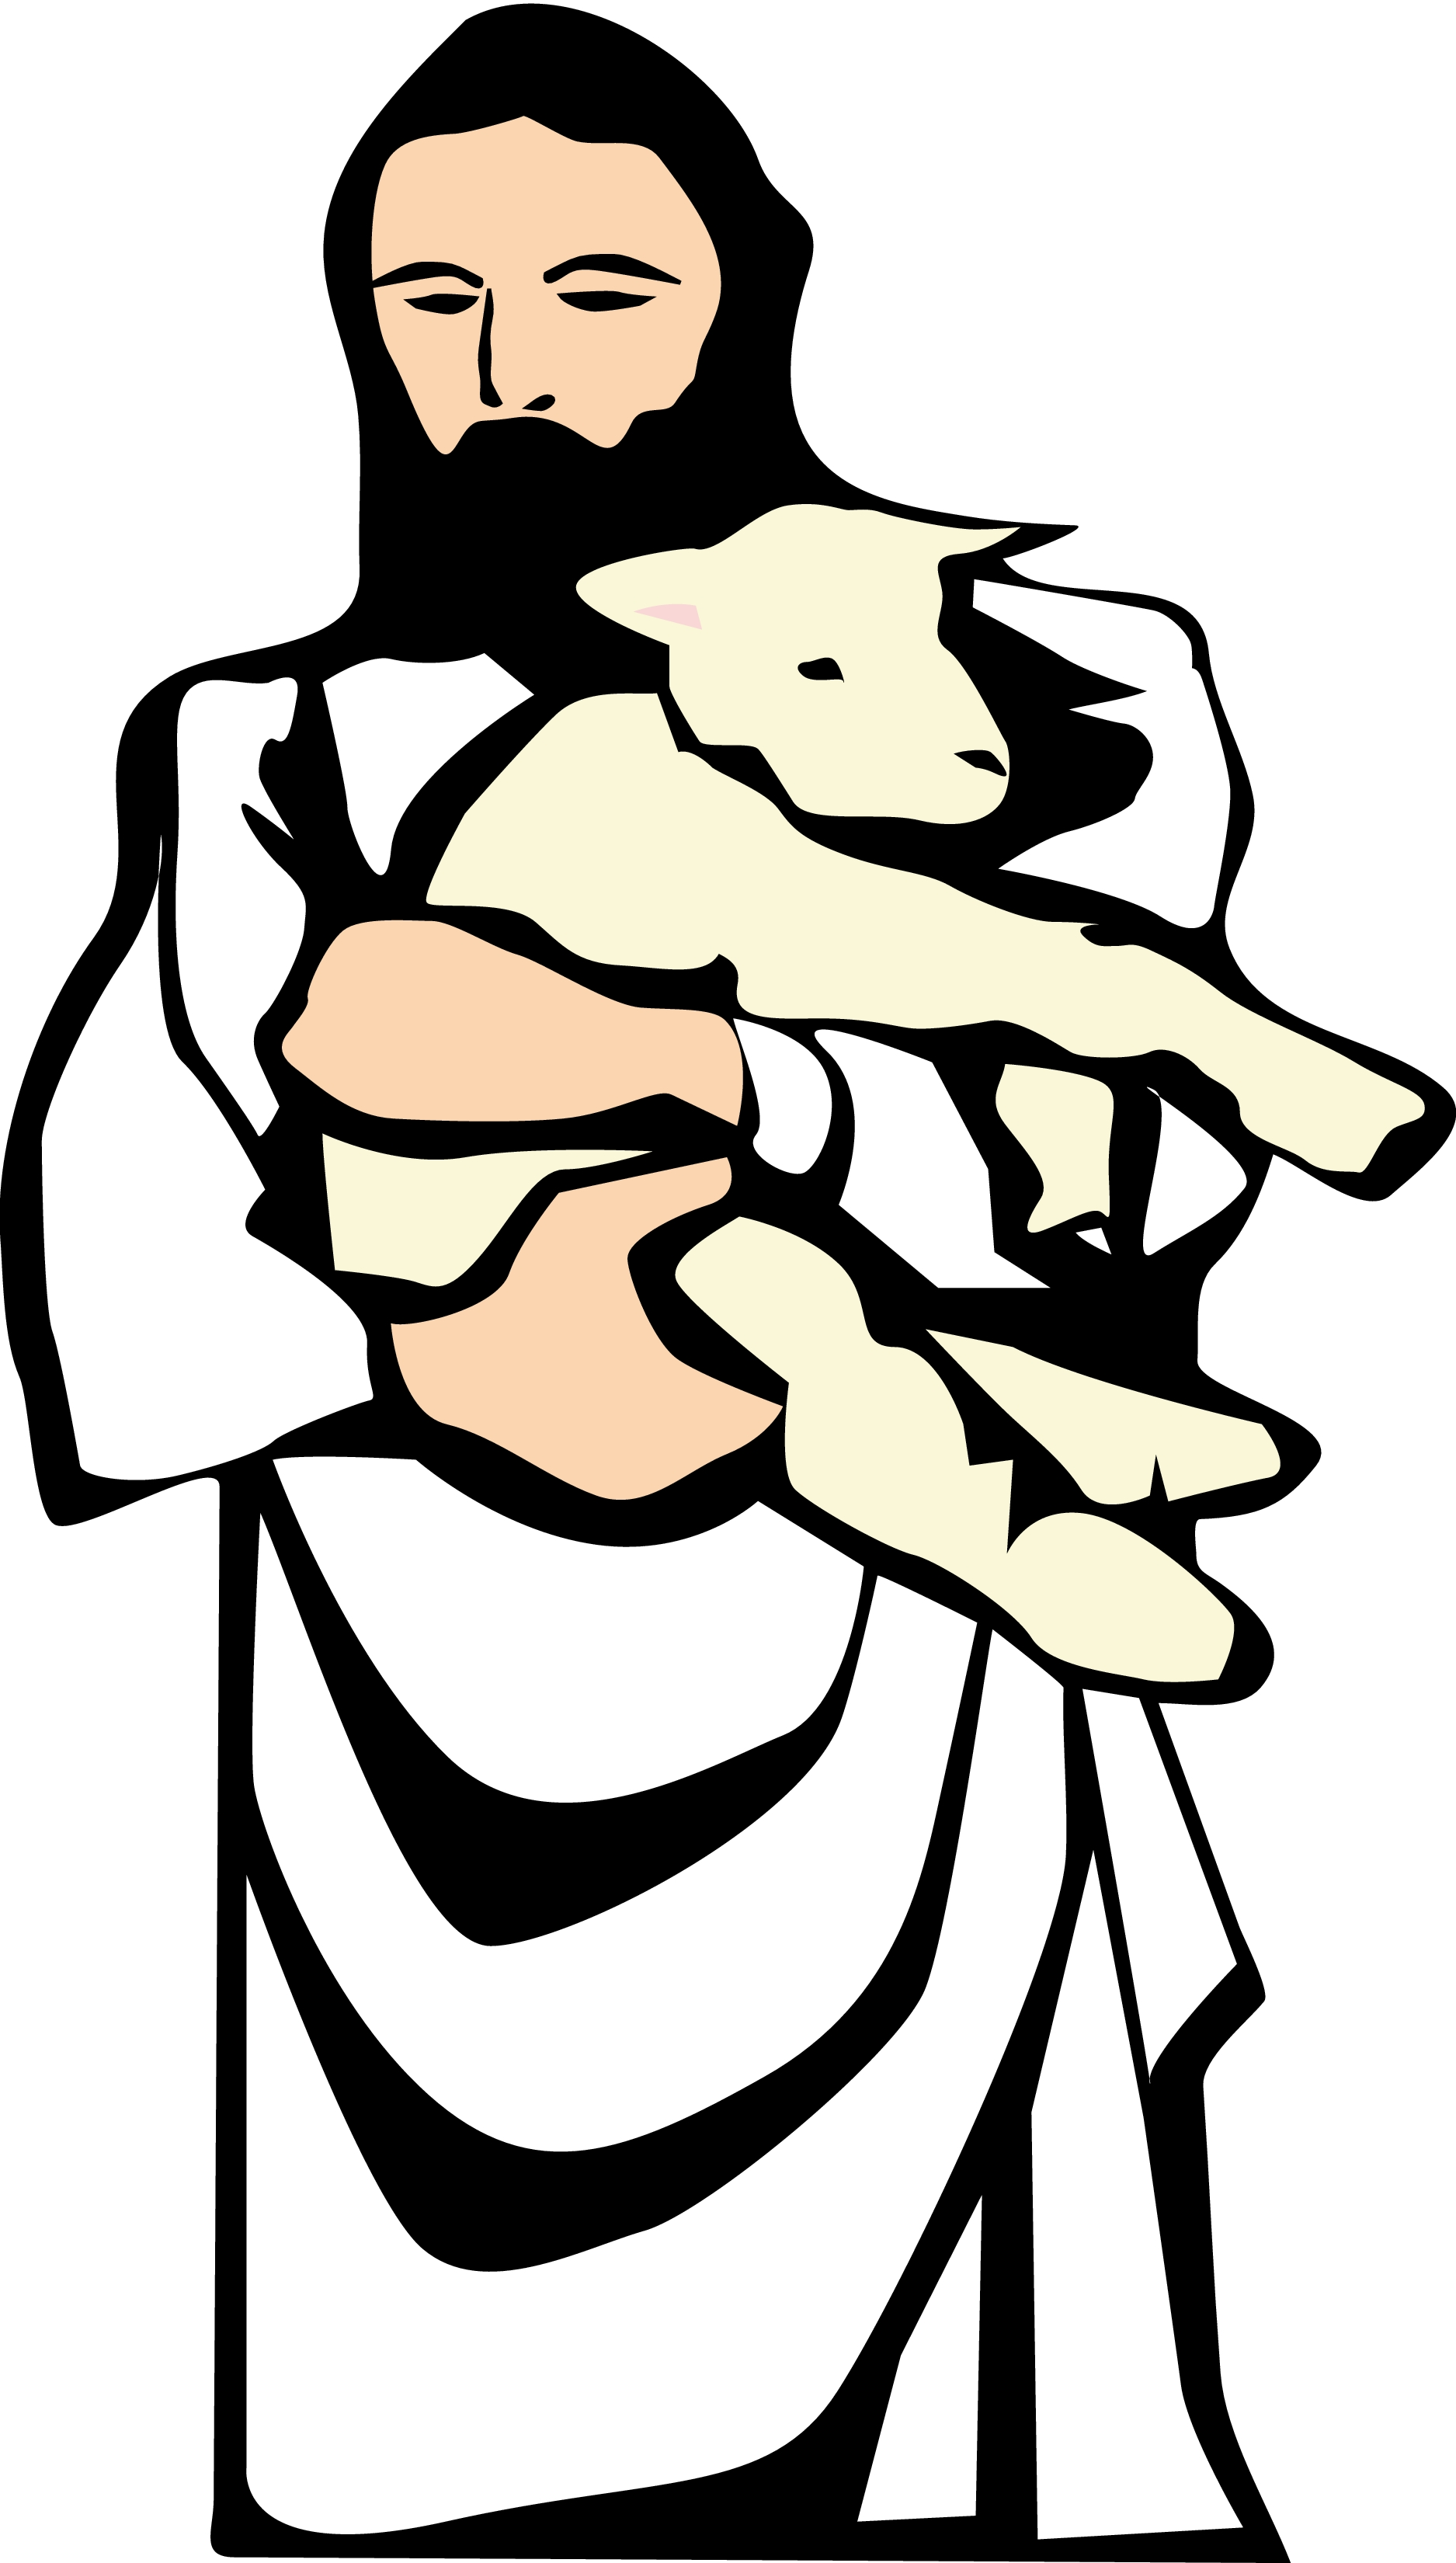 Hirte clipart picture royalty free Parable of the lost sheep clipart - ClipartFest picture royalty free